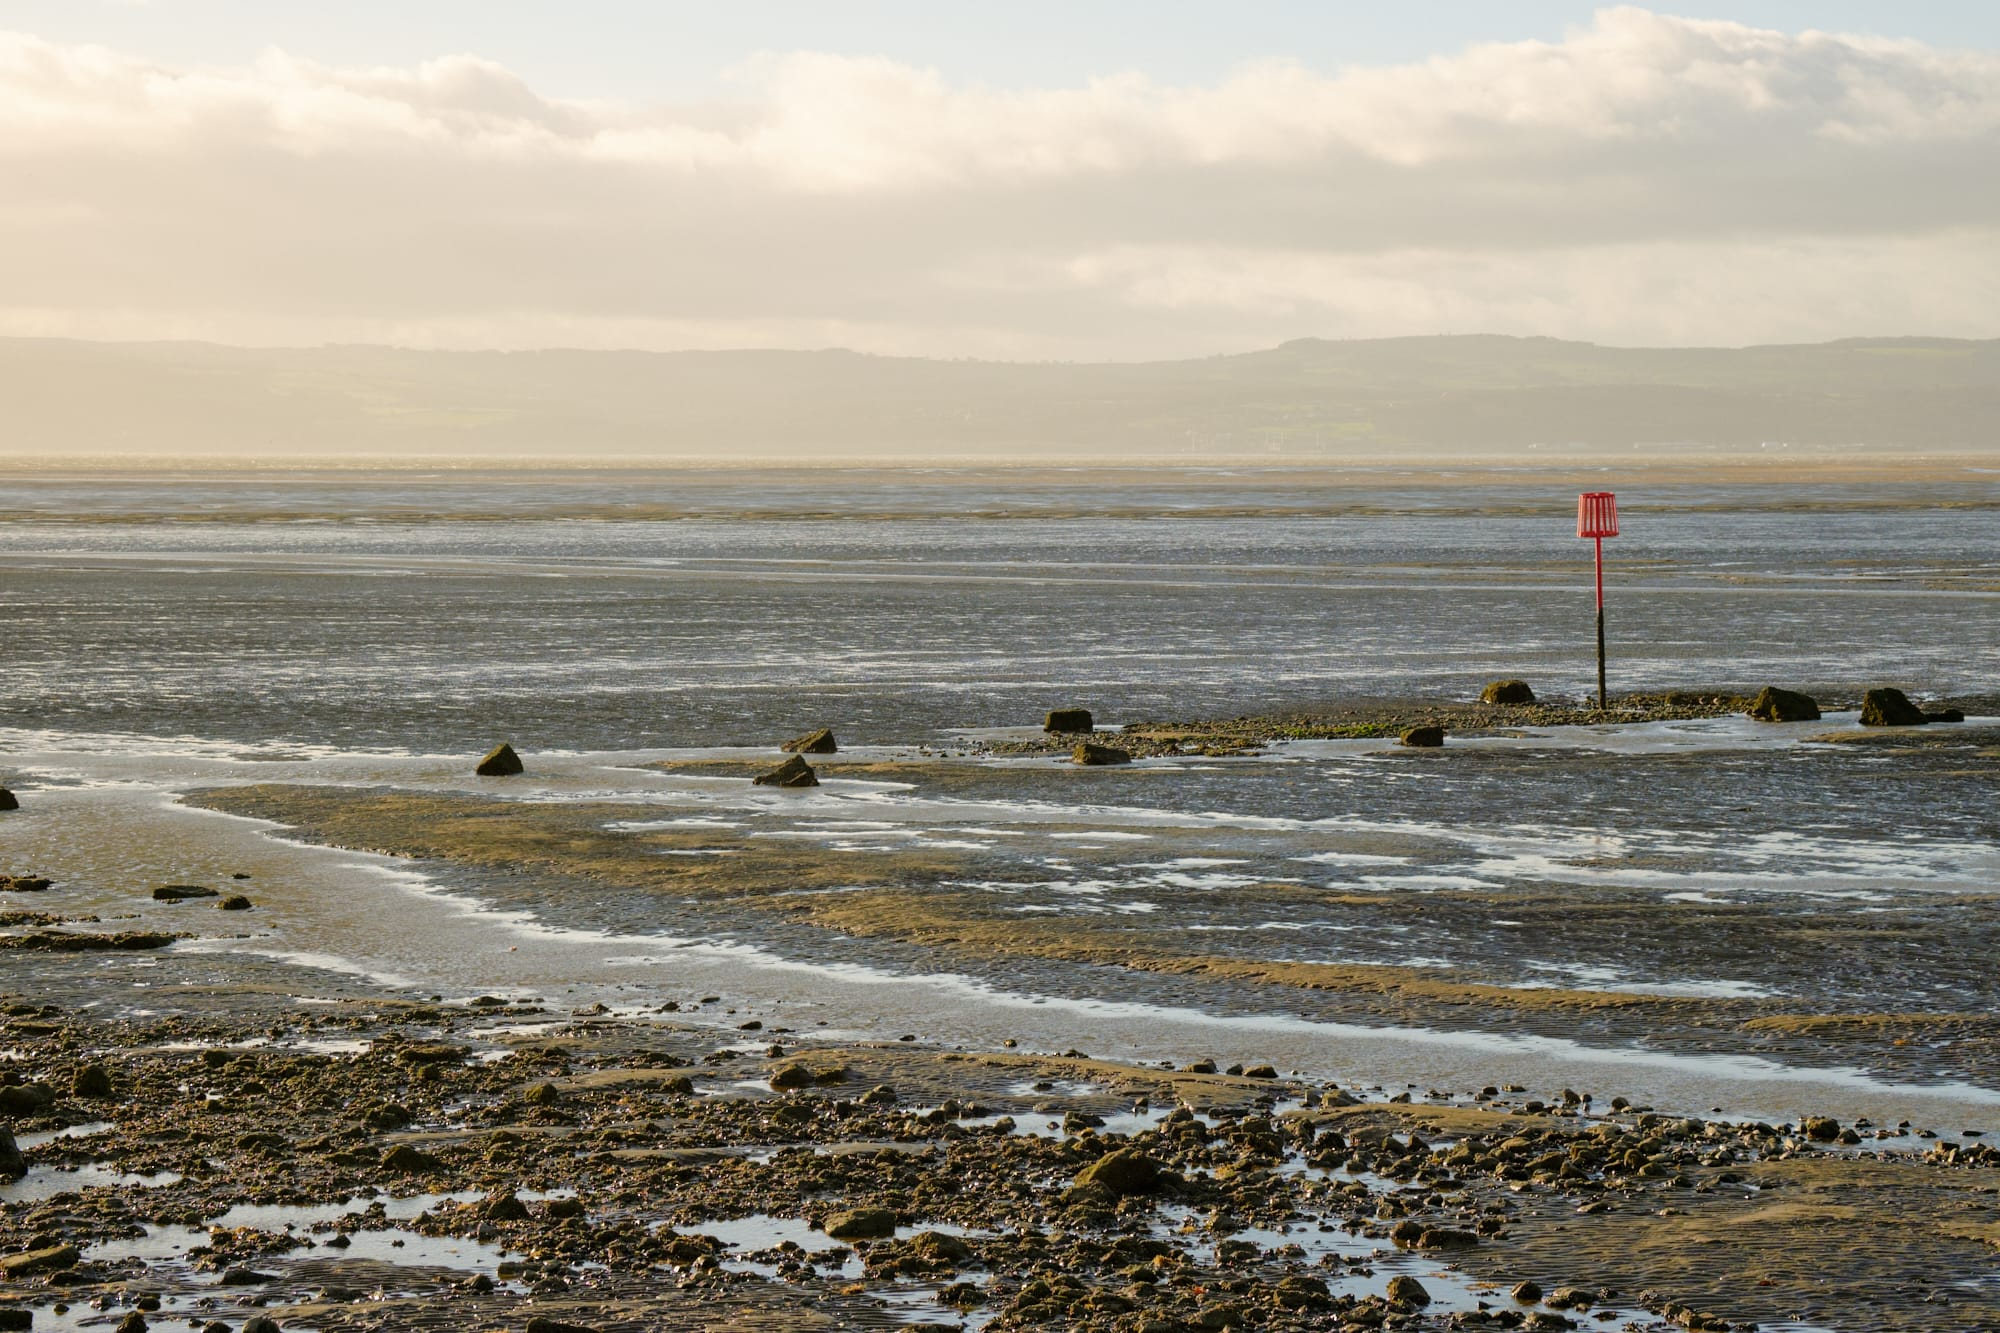 looking out over the mouth of the River Dee from West Kirby